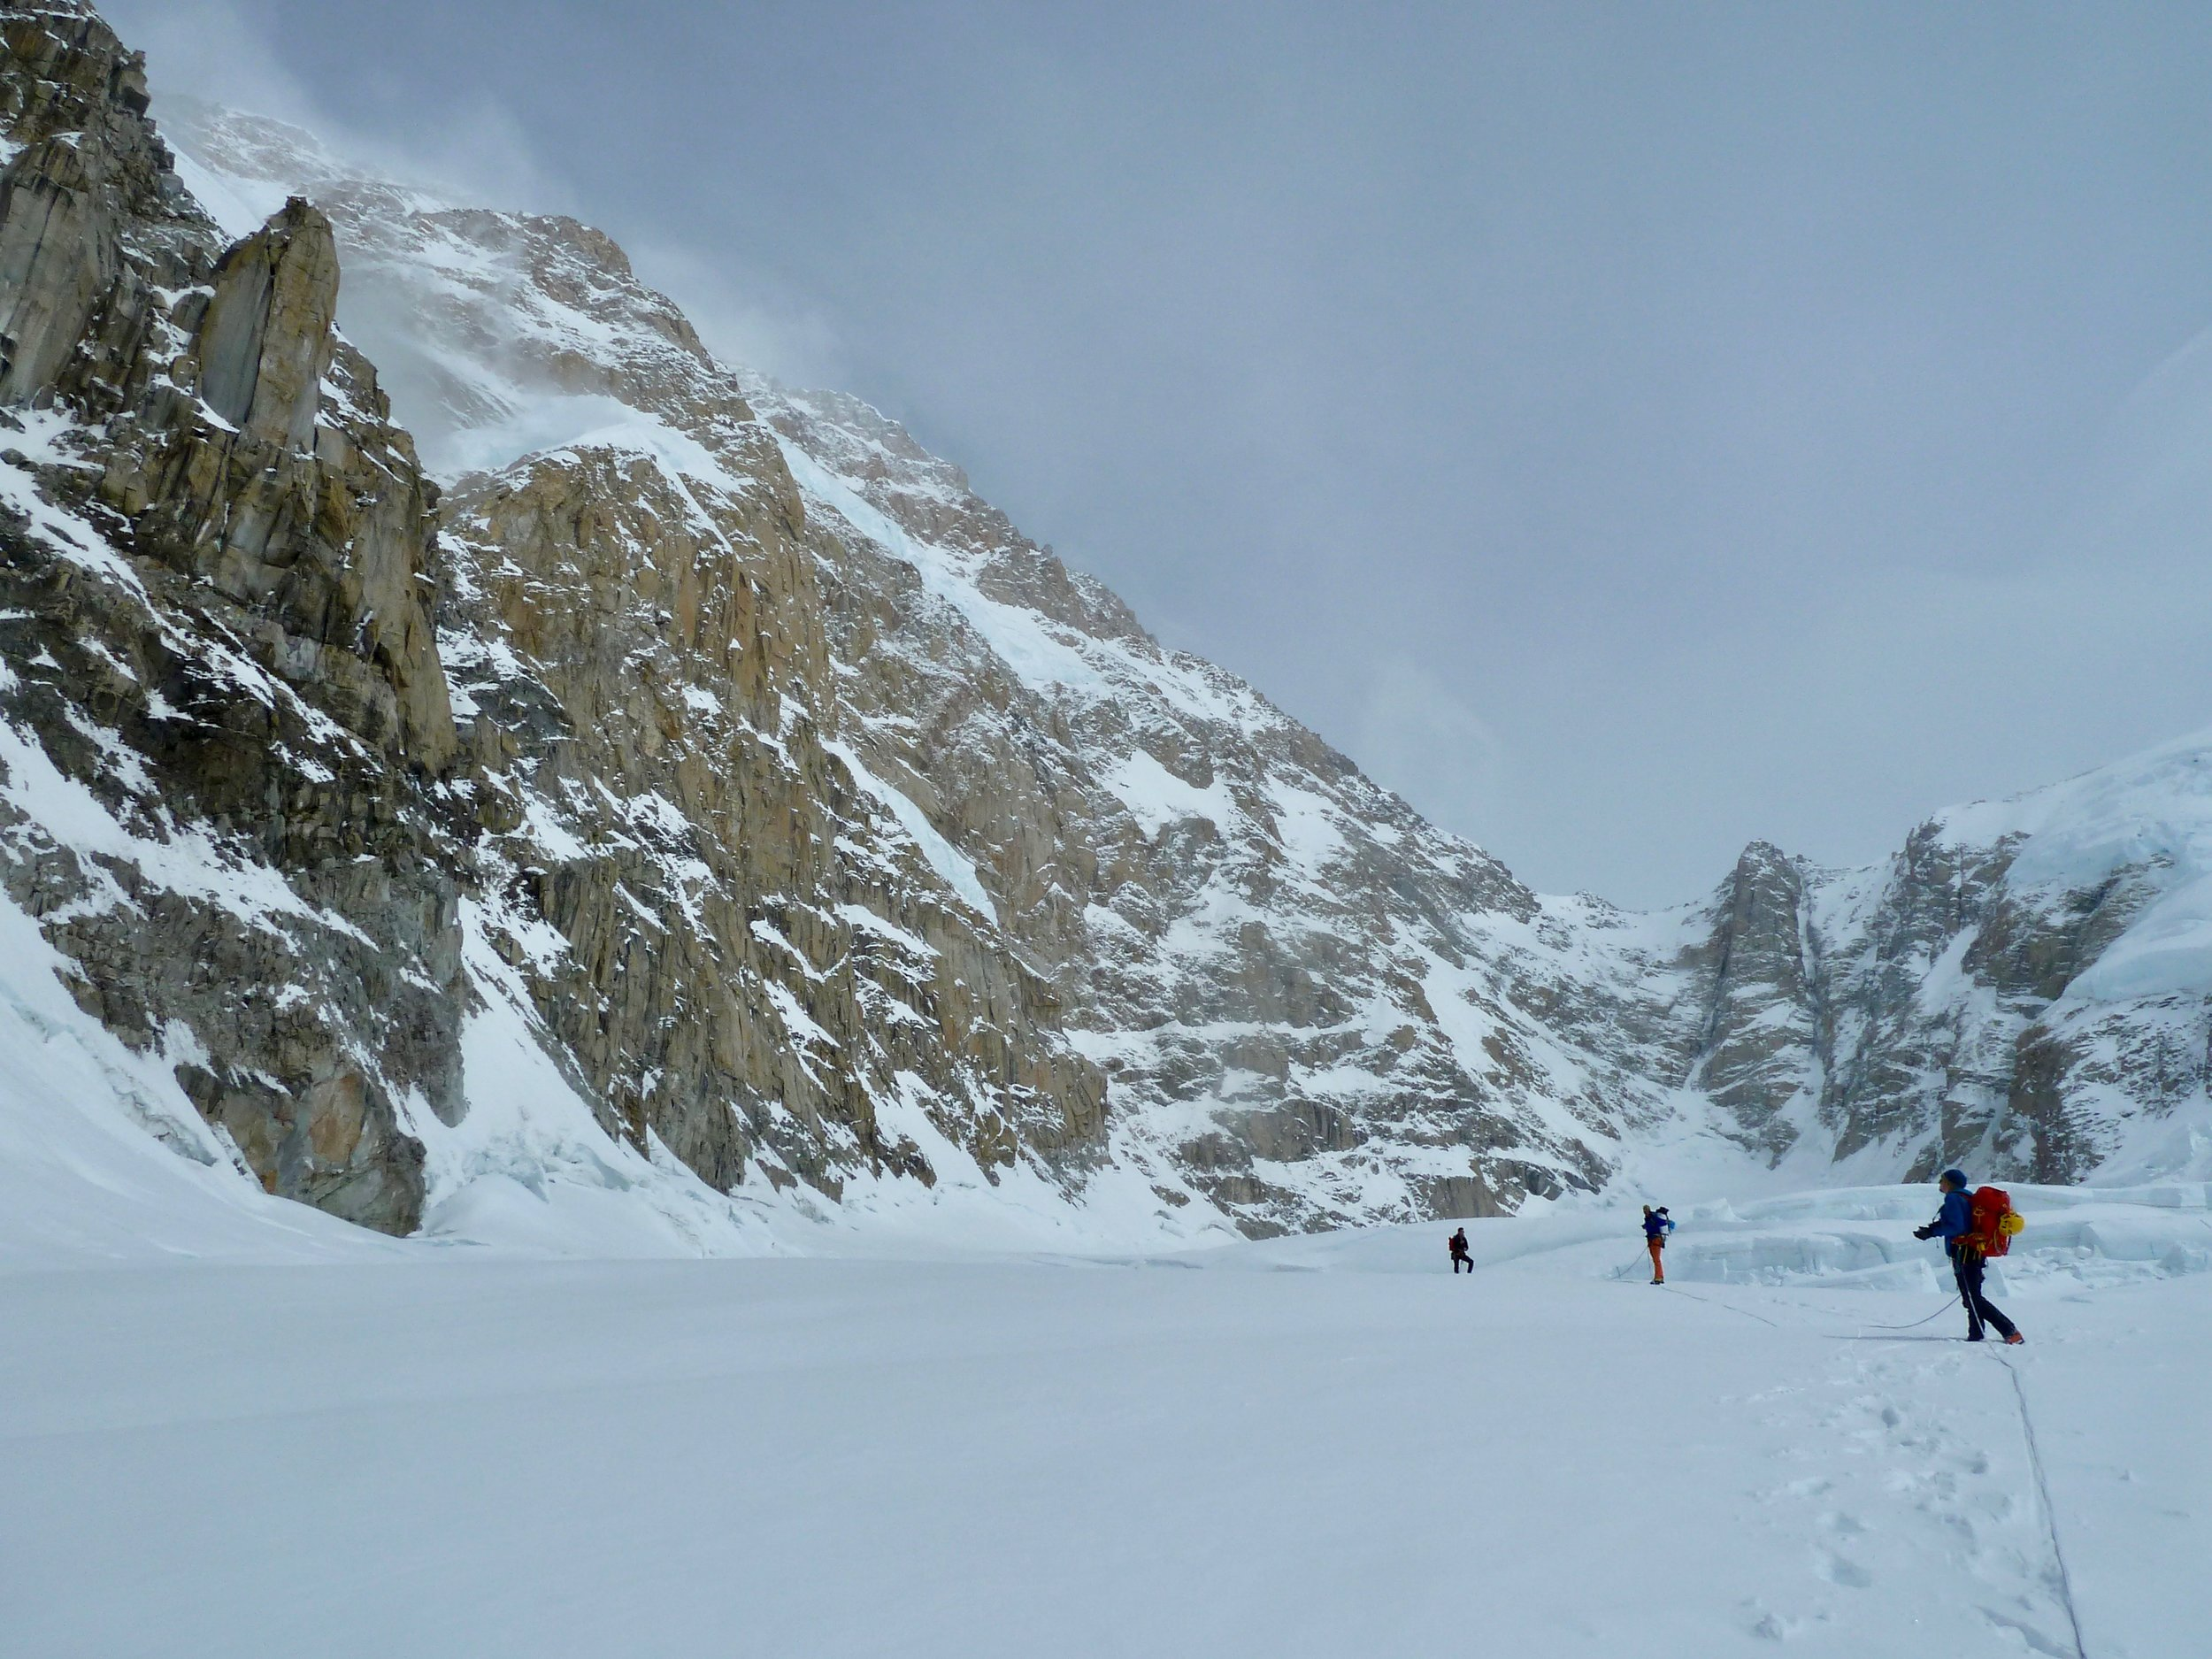 Walking out the East Fork, away from the south face and Slovak Direct of Denali. Storms raging.